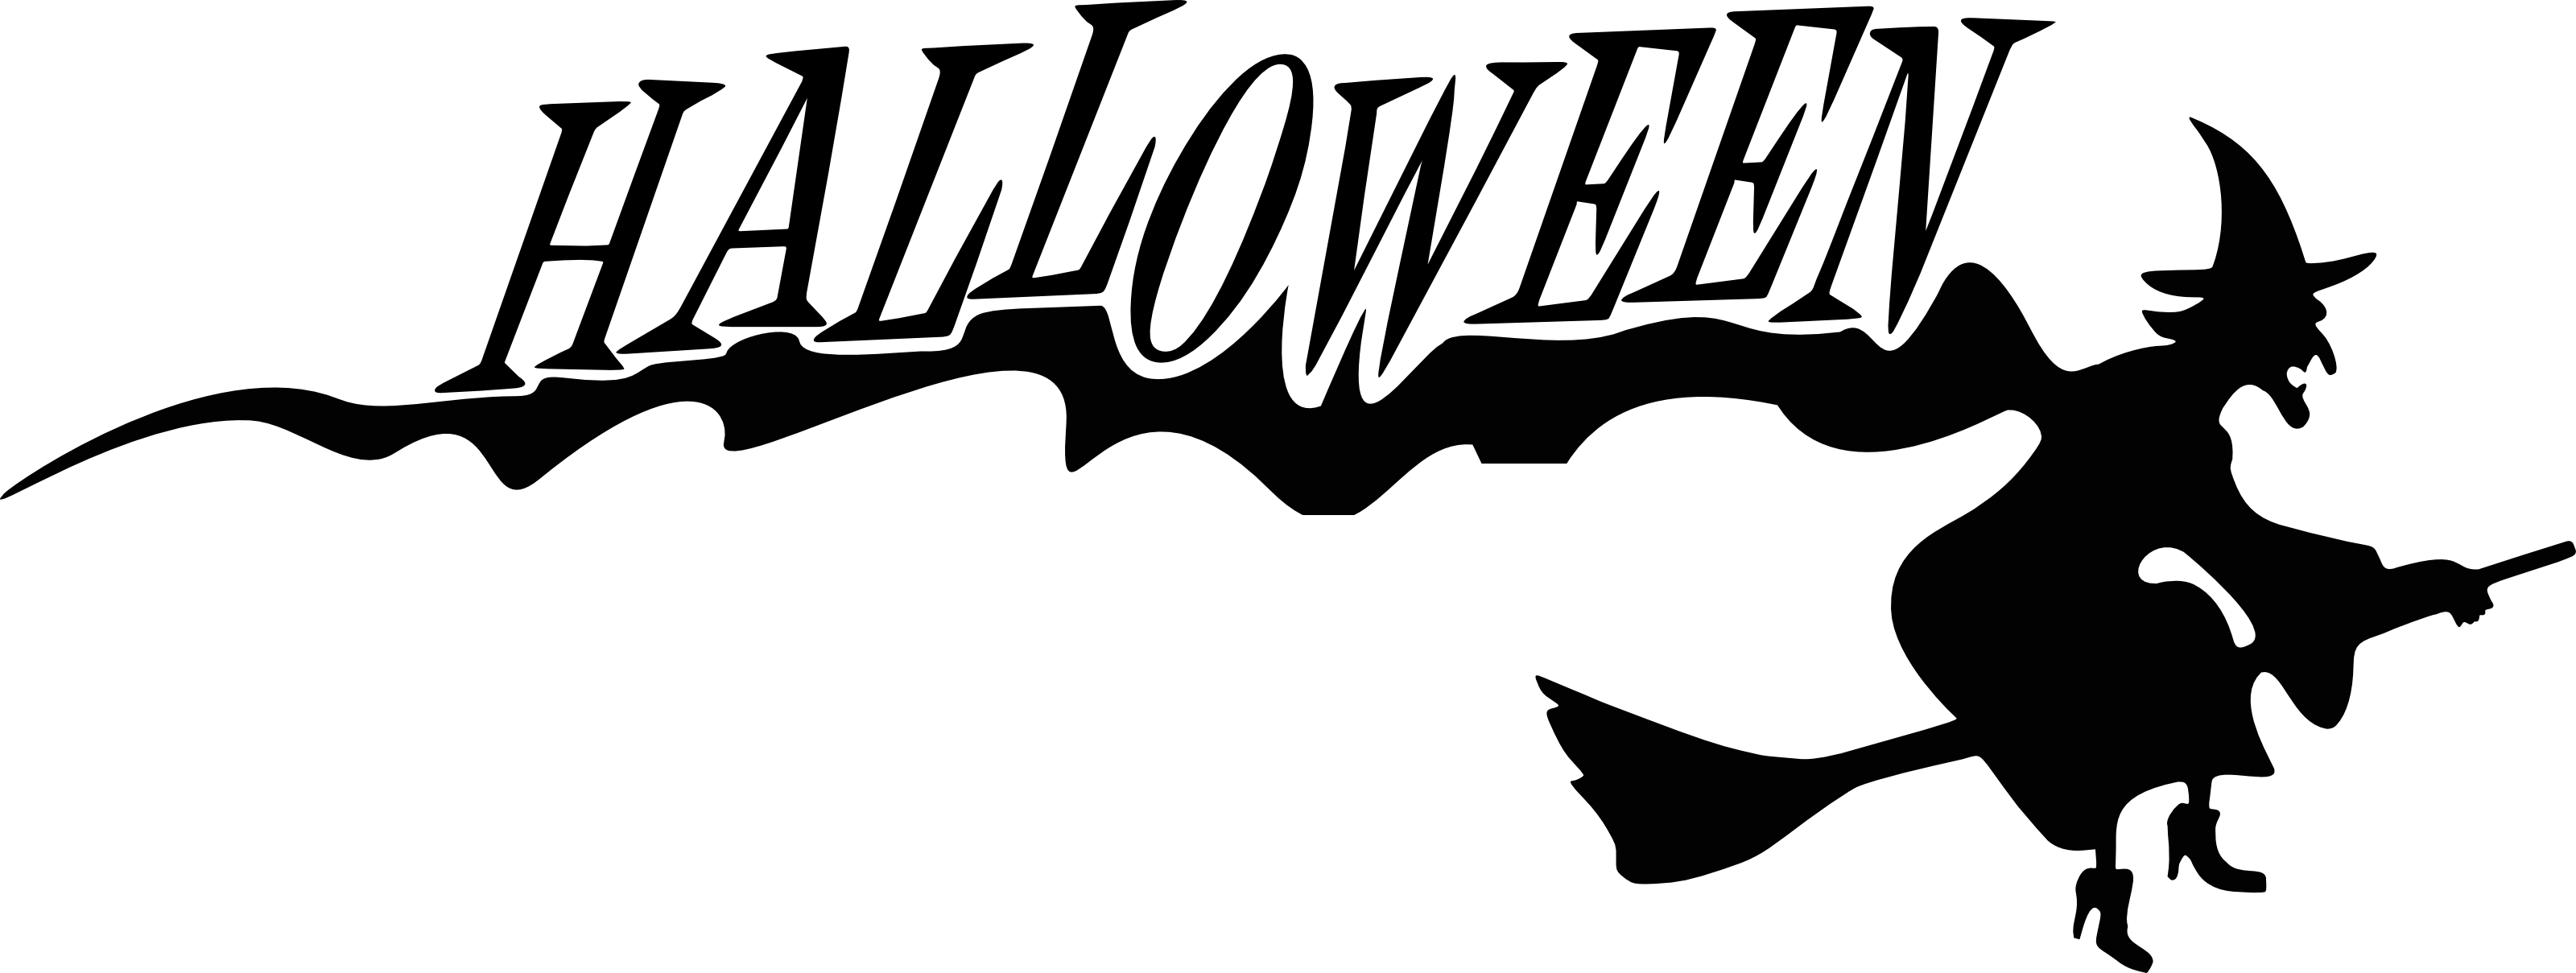 Happy Halloween Text PNG Mart - Halloween HD PNG